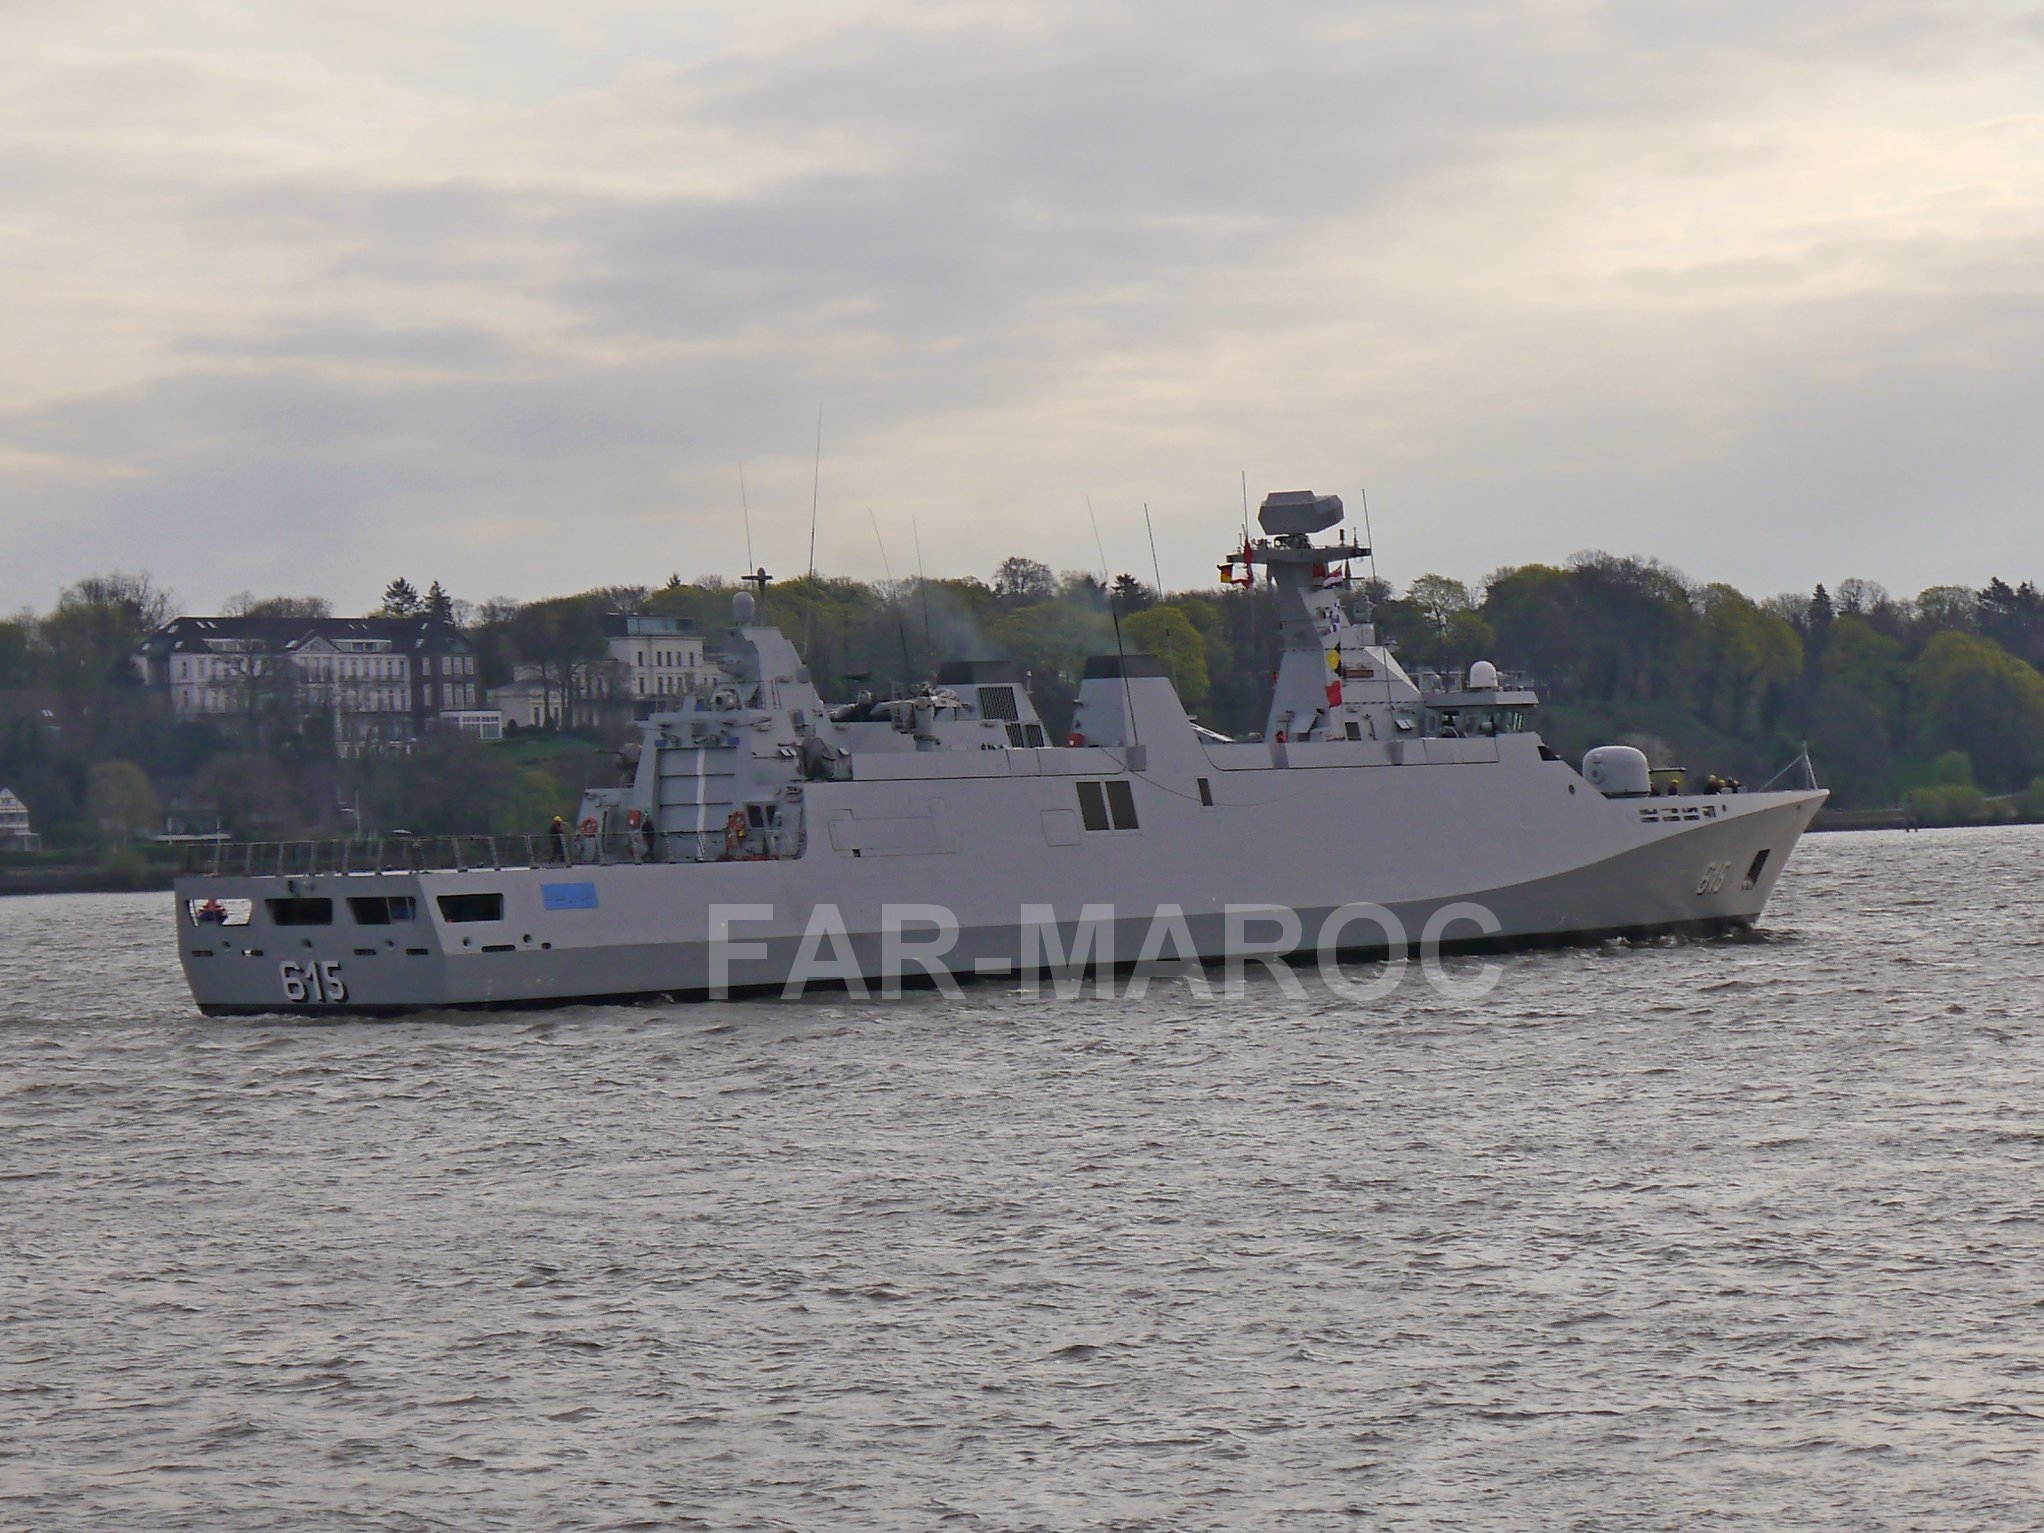 Royal Moroccan Navy Sigma class frigates / Frégates marocaines multimissions Sigma - Page 25 46679220525_f77b064836_o